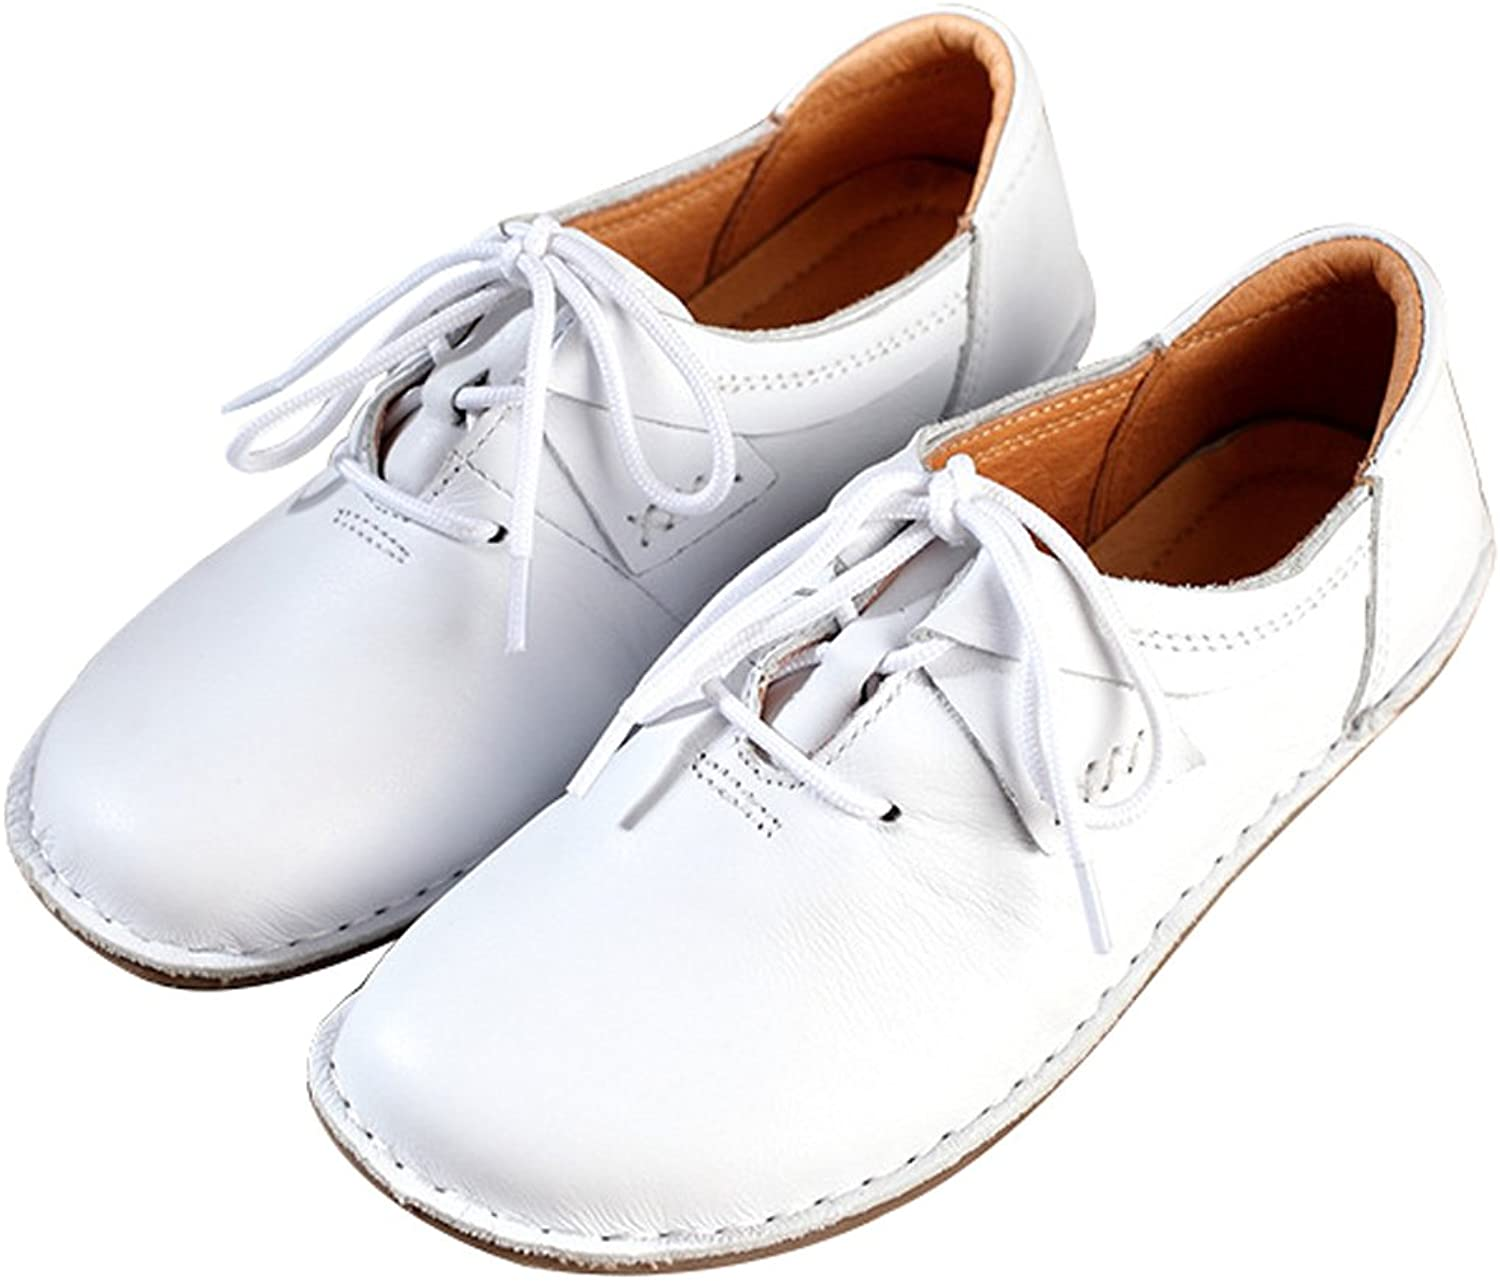 Zoulee Women's Round Toe Hand Made Leather Lace Up Flat shoes White US 8-8.5  CH 40